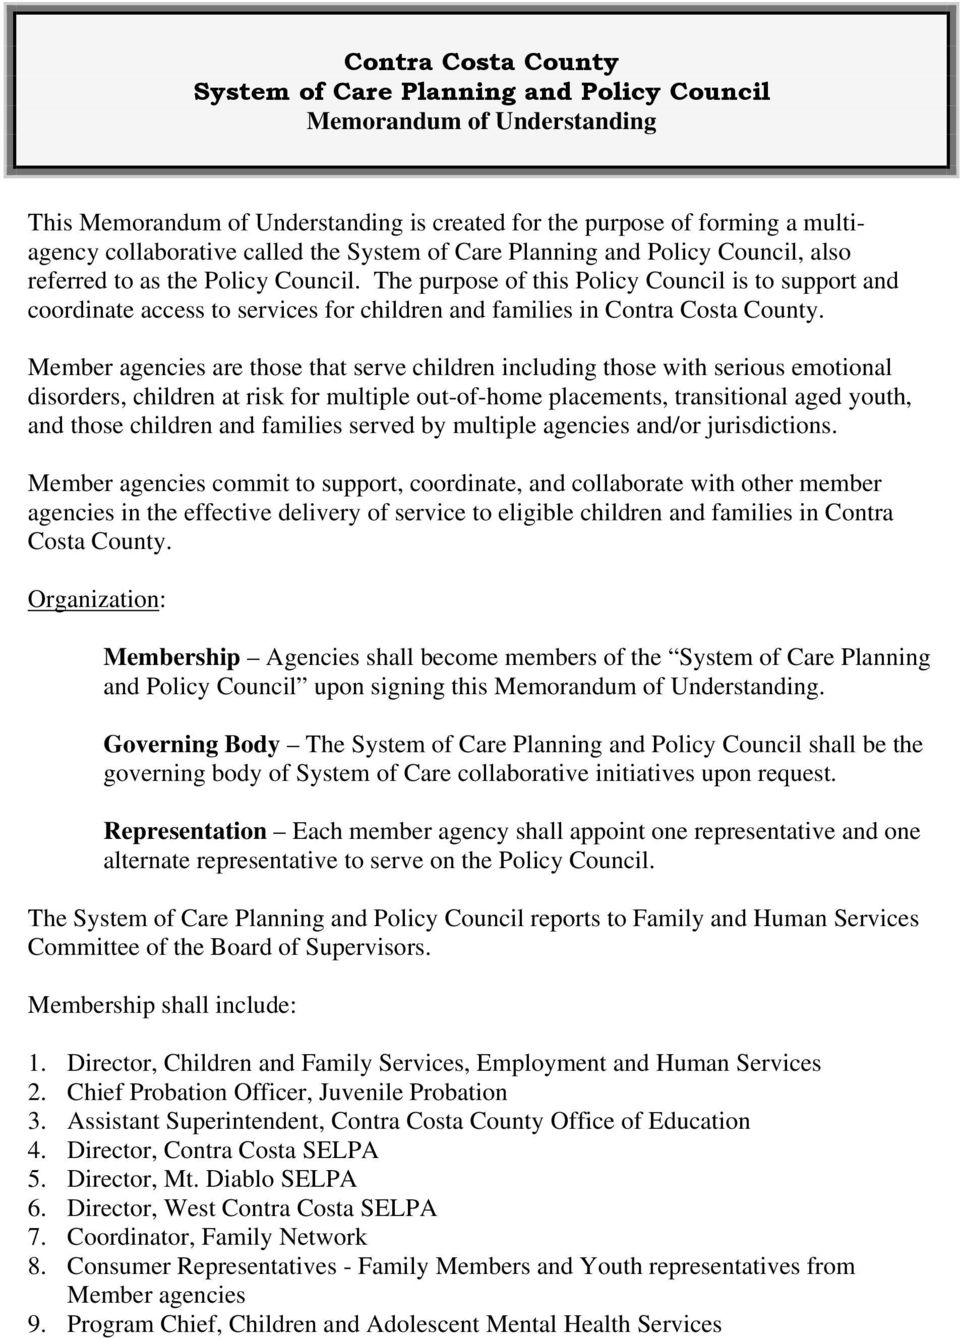 The purpose of this Policy Council is to support and coordinate access to services for children and families in Contra Costa County.